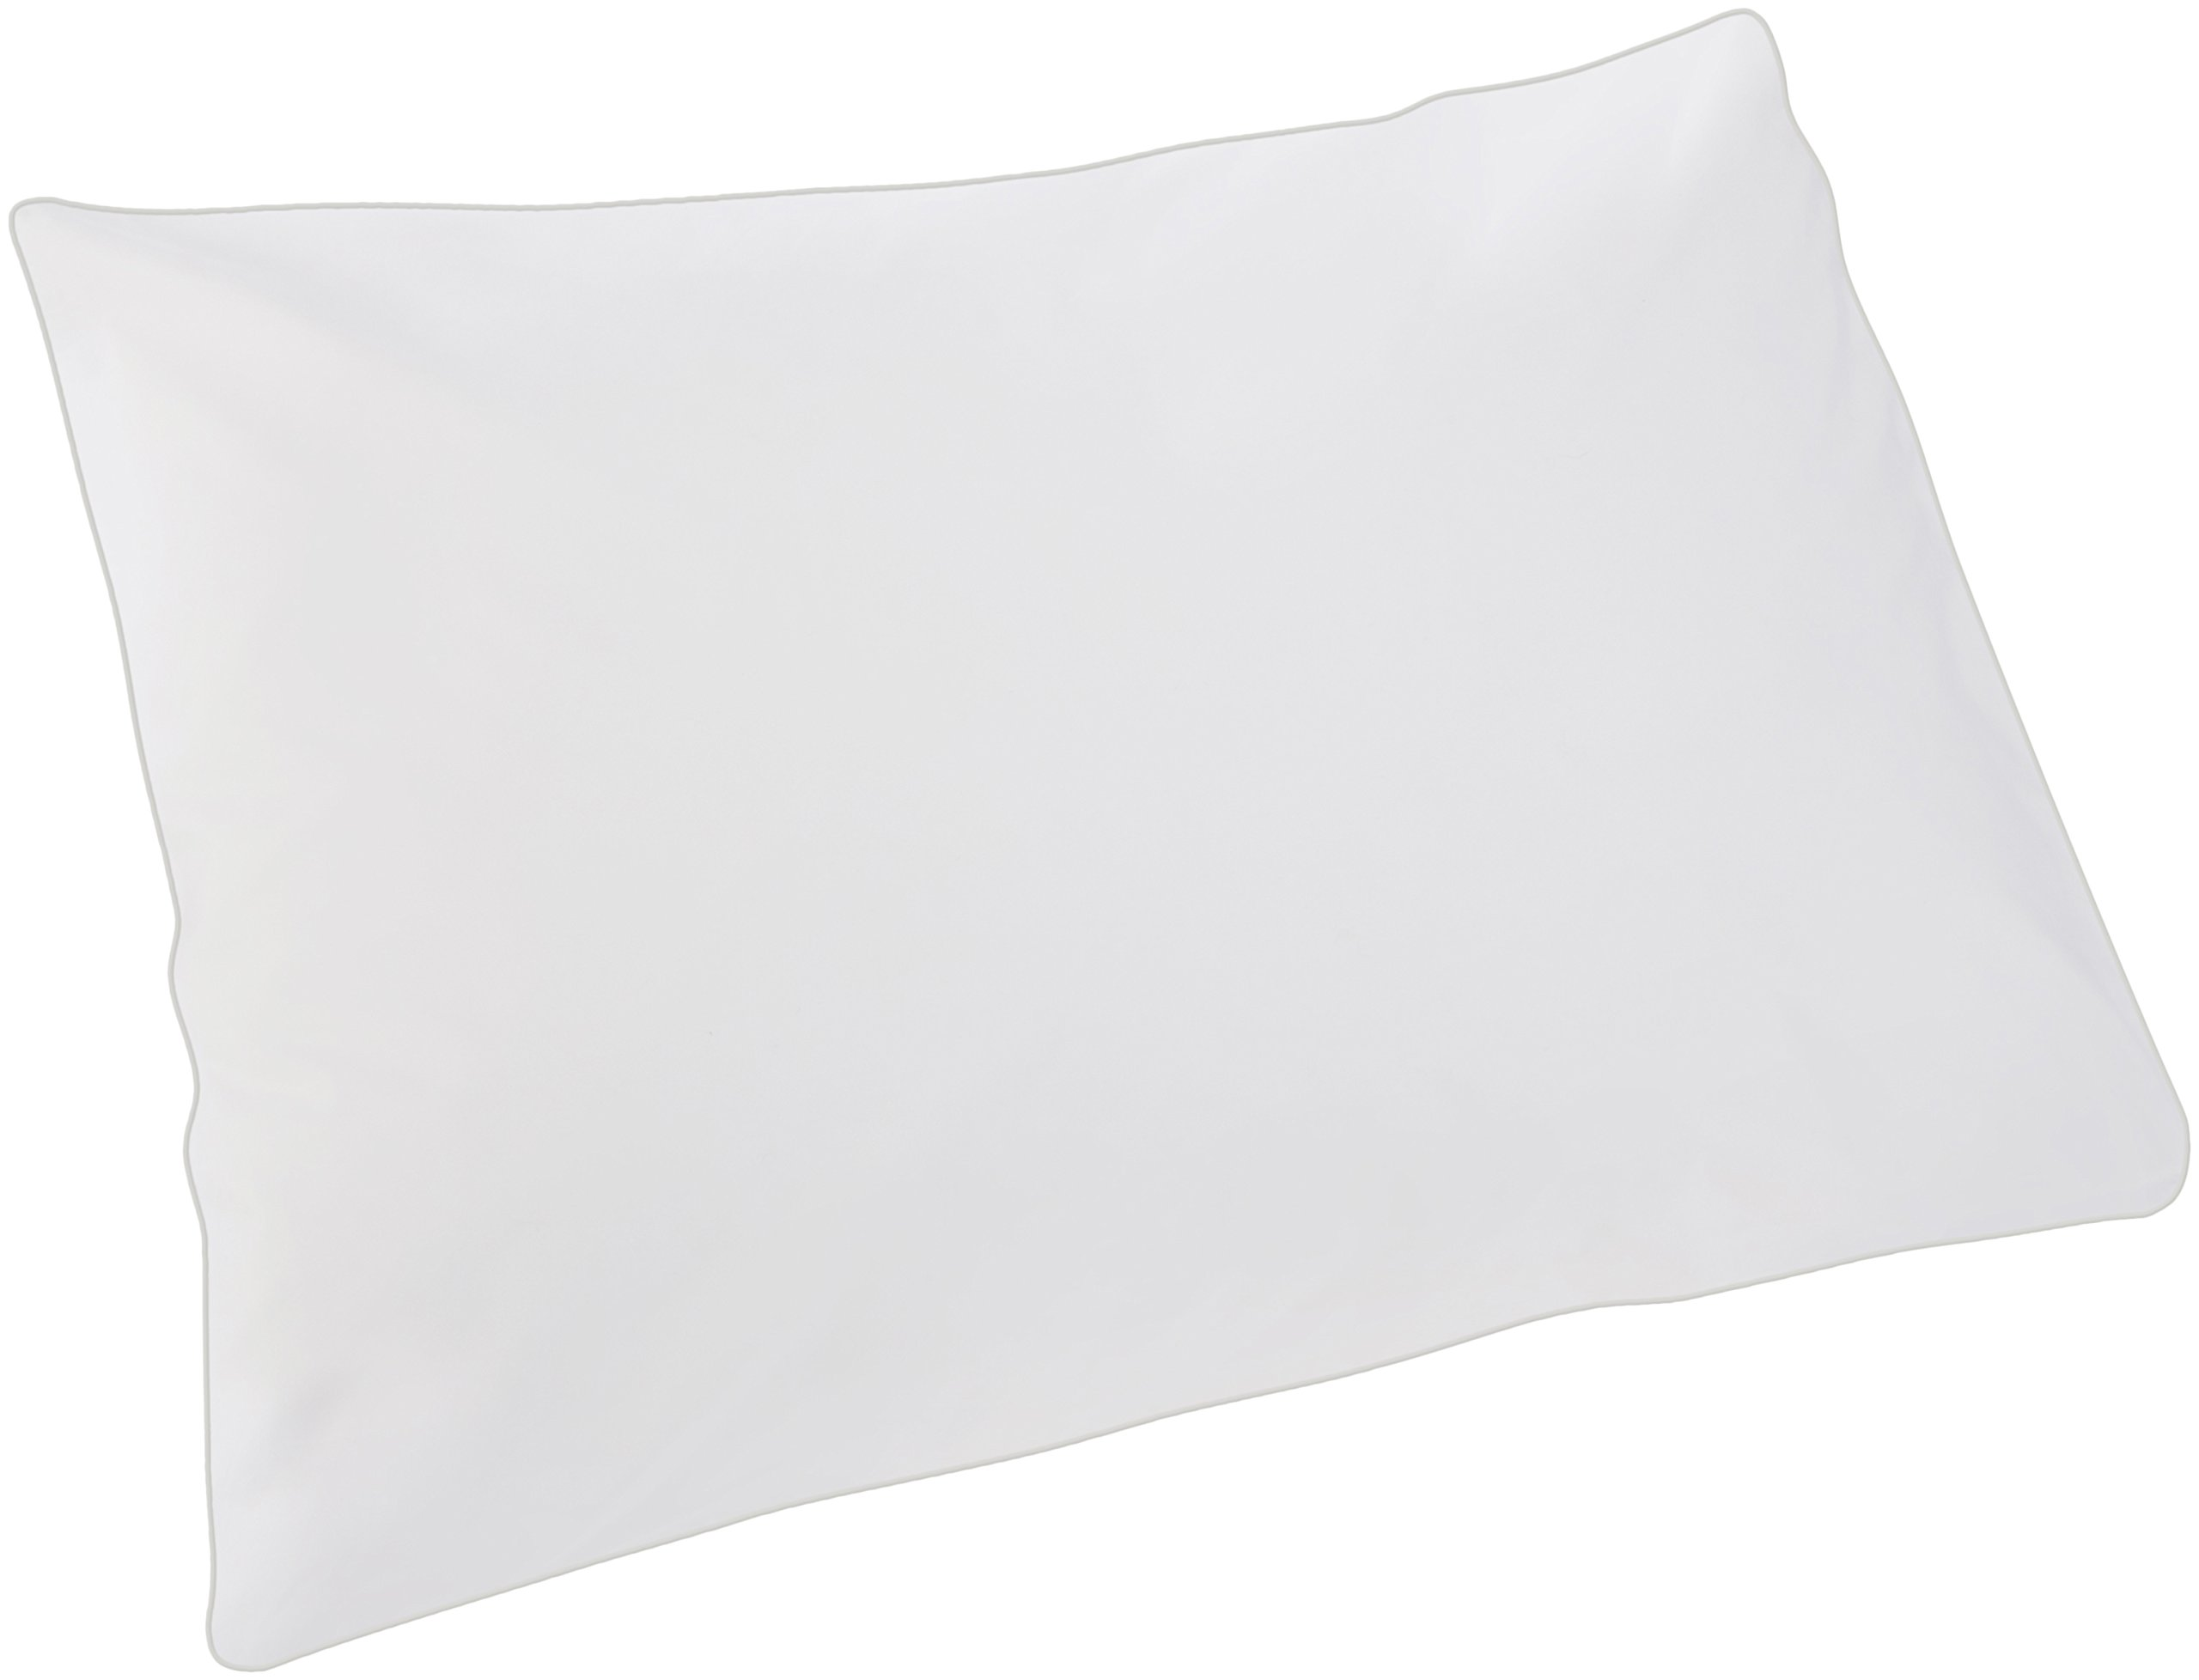 Calvin Klein Home Series 01, King Sham, Grey